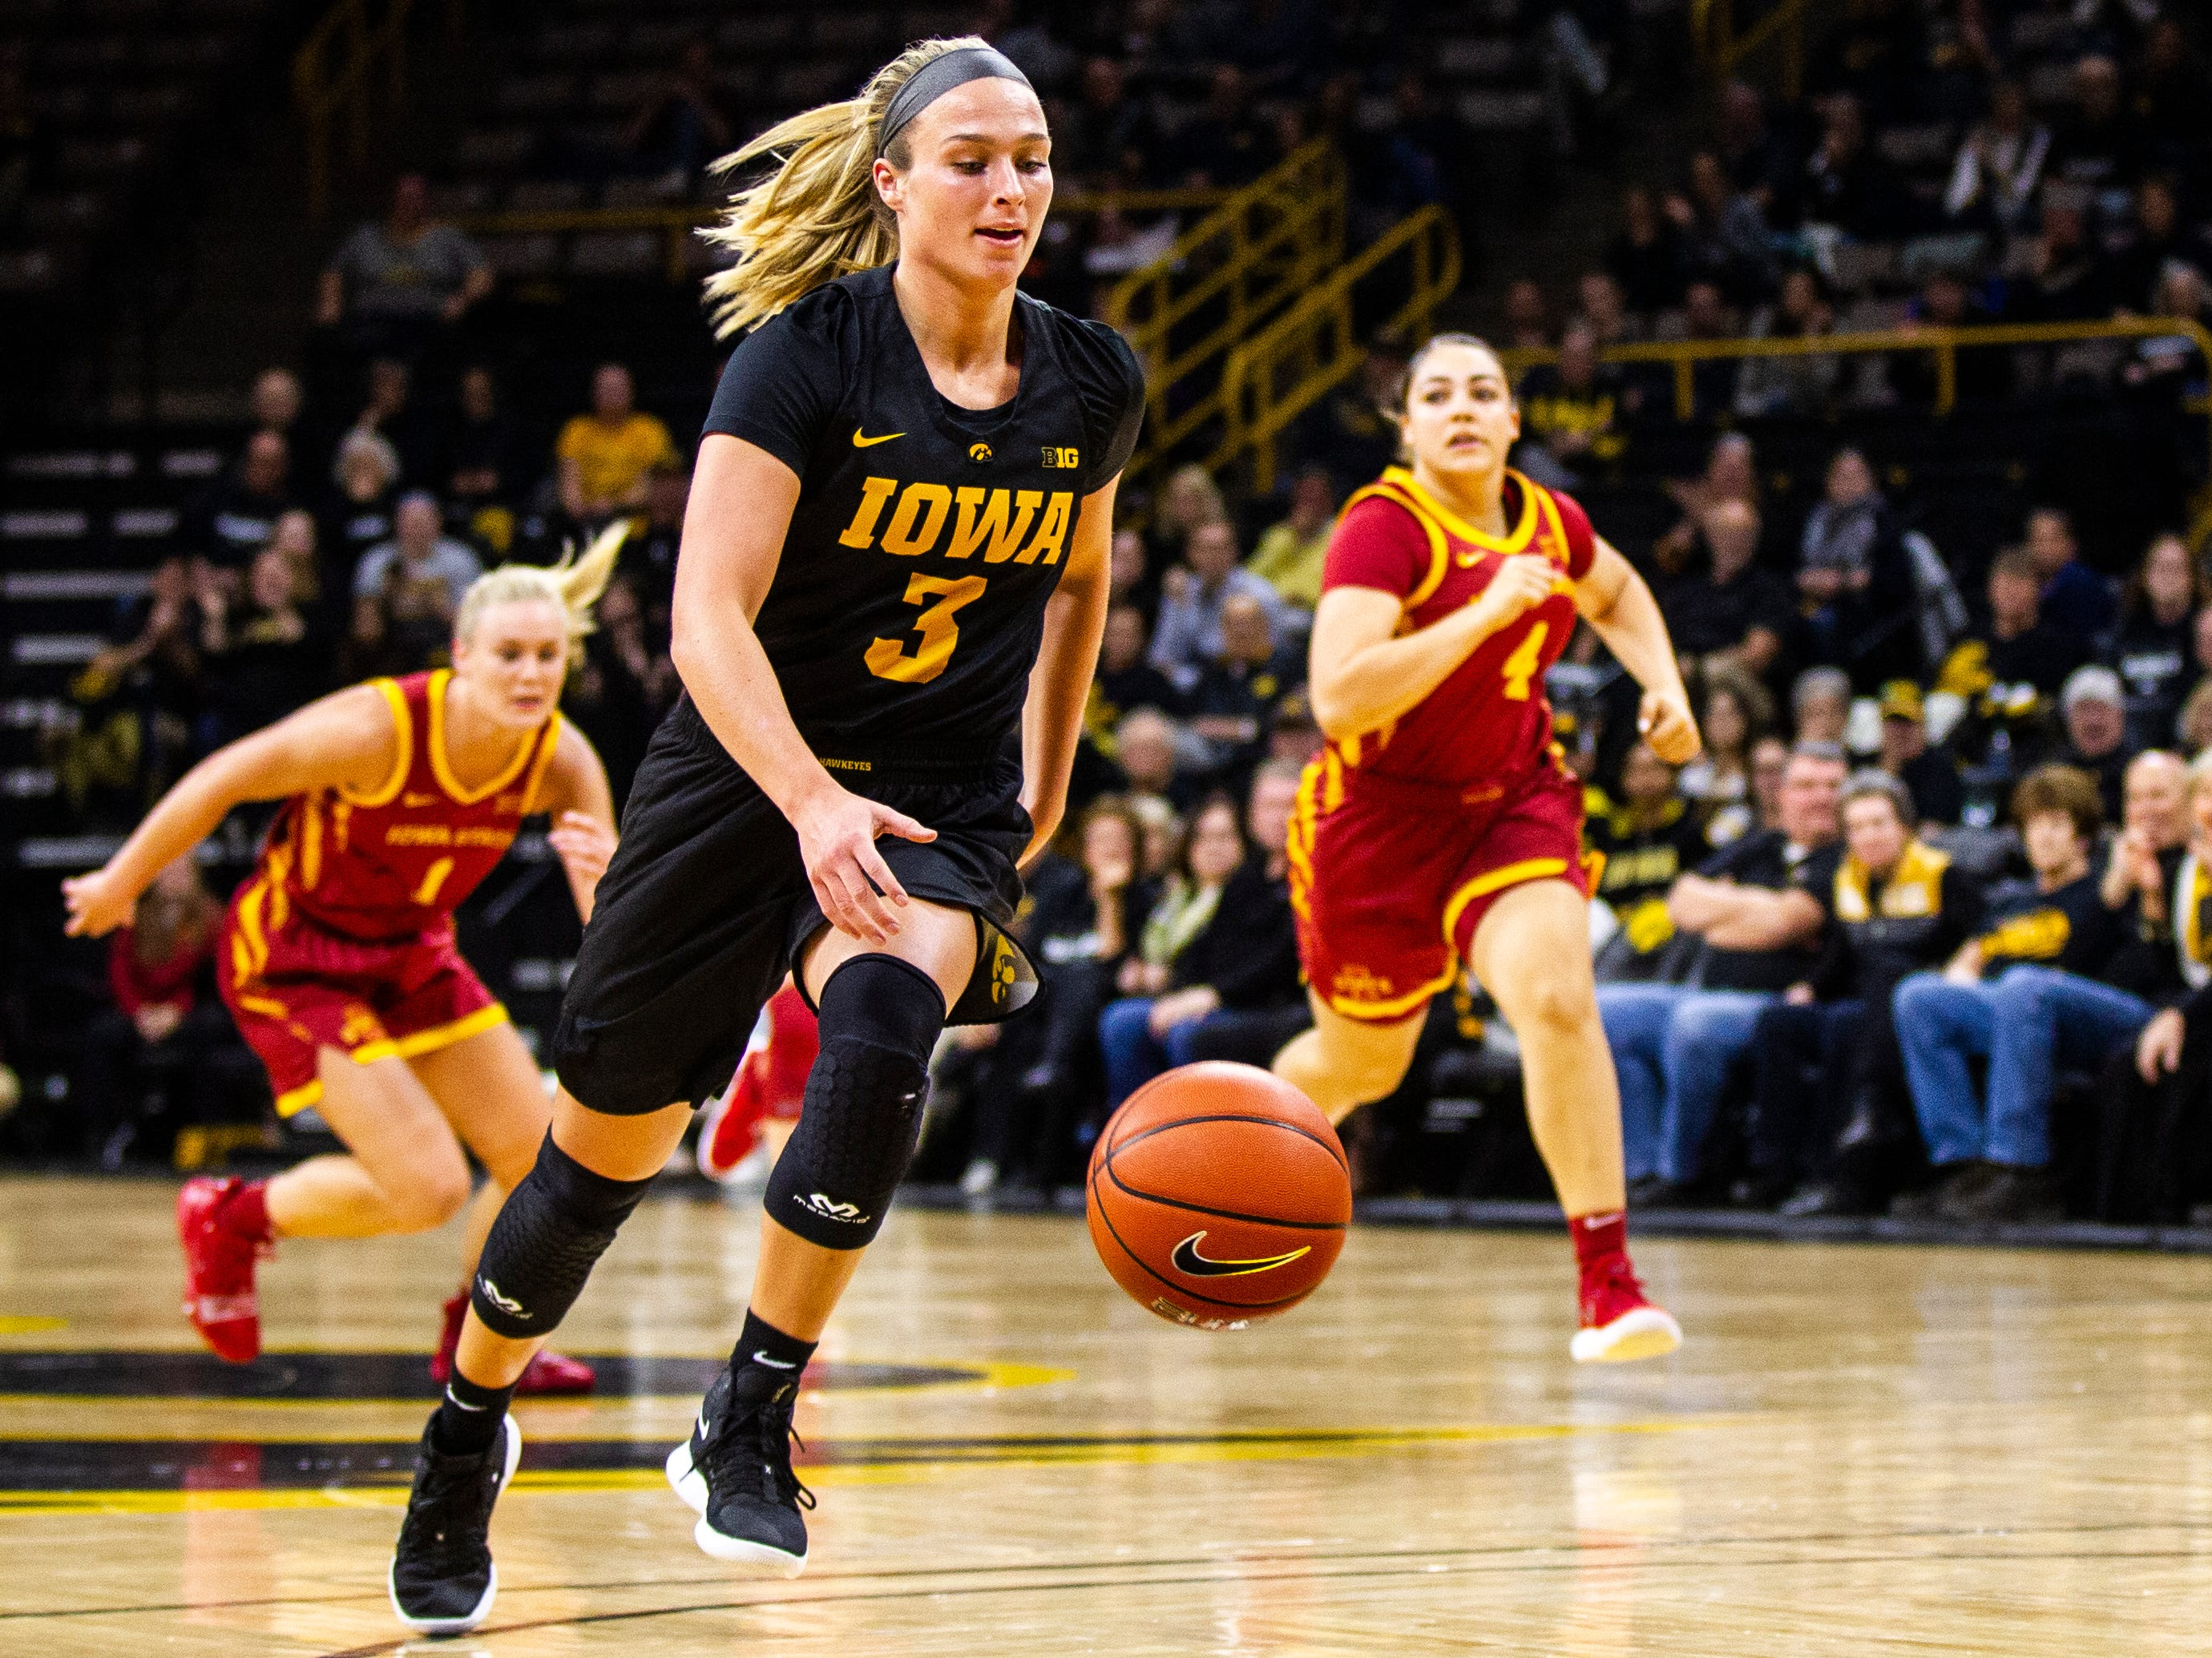 Iowa guard Makenzie Meyer (3) drives to the basket after getting a steal during a Cy-Hawk series NCAA women's basketball game on Wednesday, Dec. 5, 2018, at Carver-Hawkeye Arena in Iowa City.